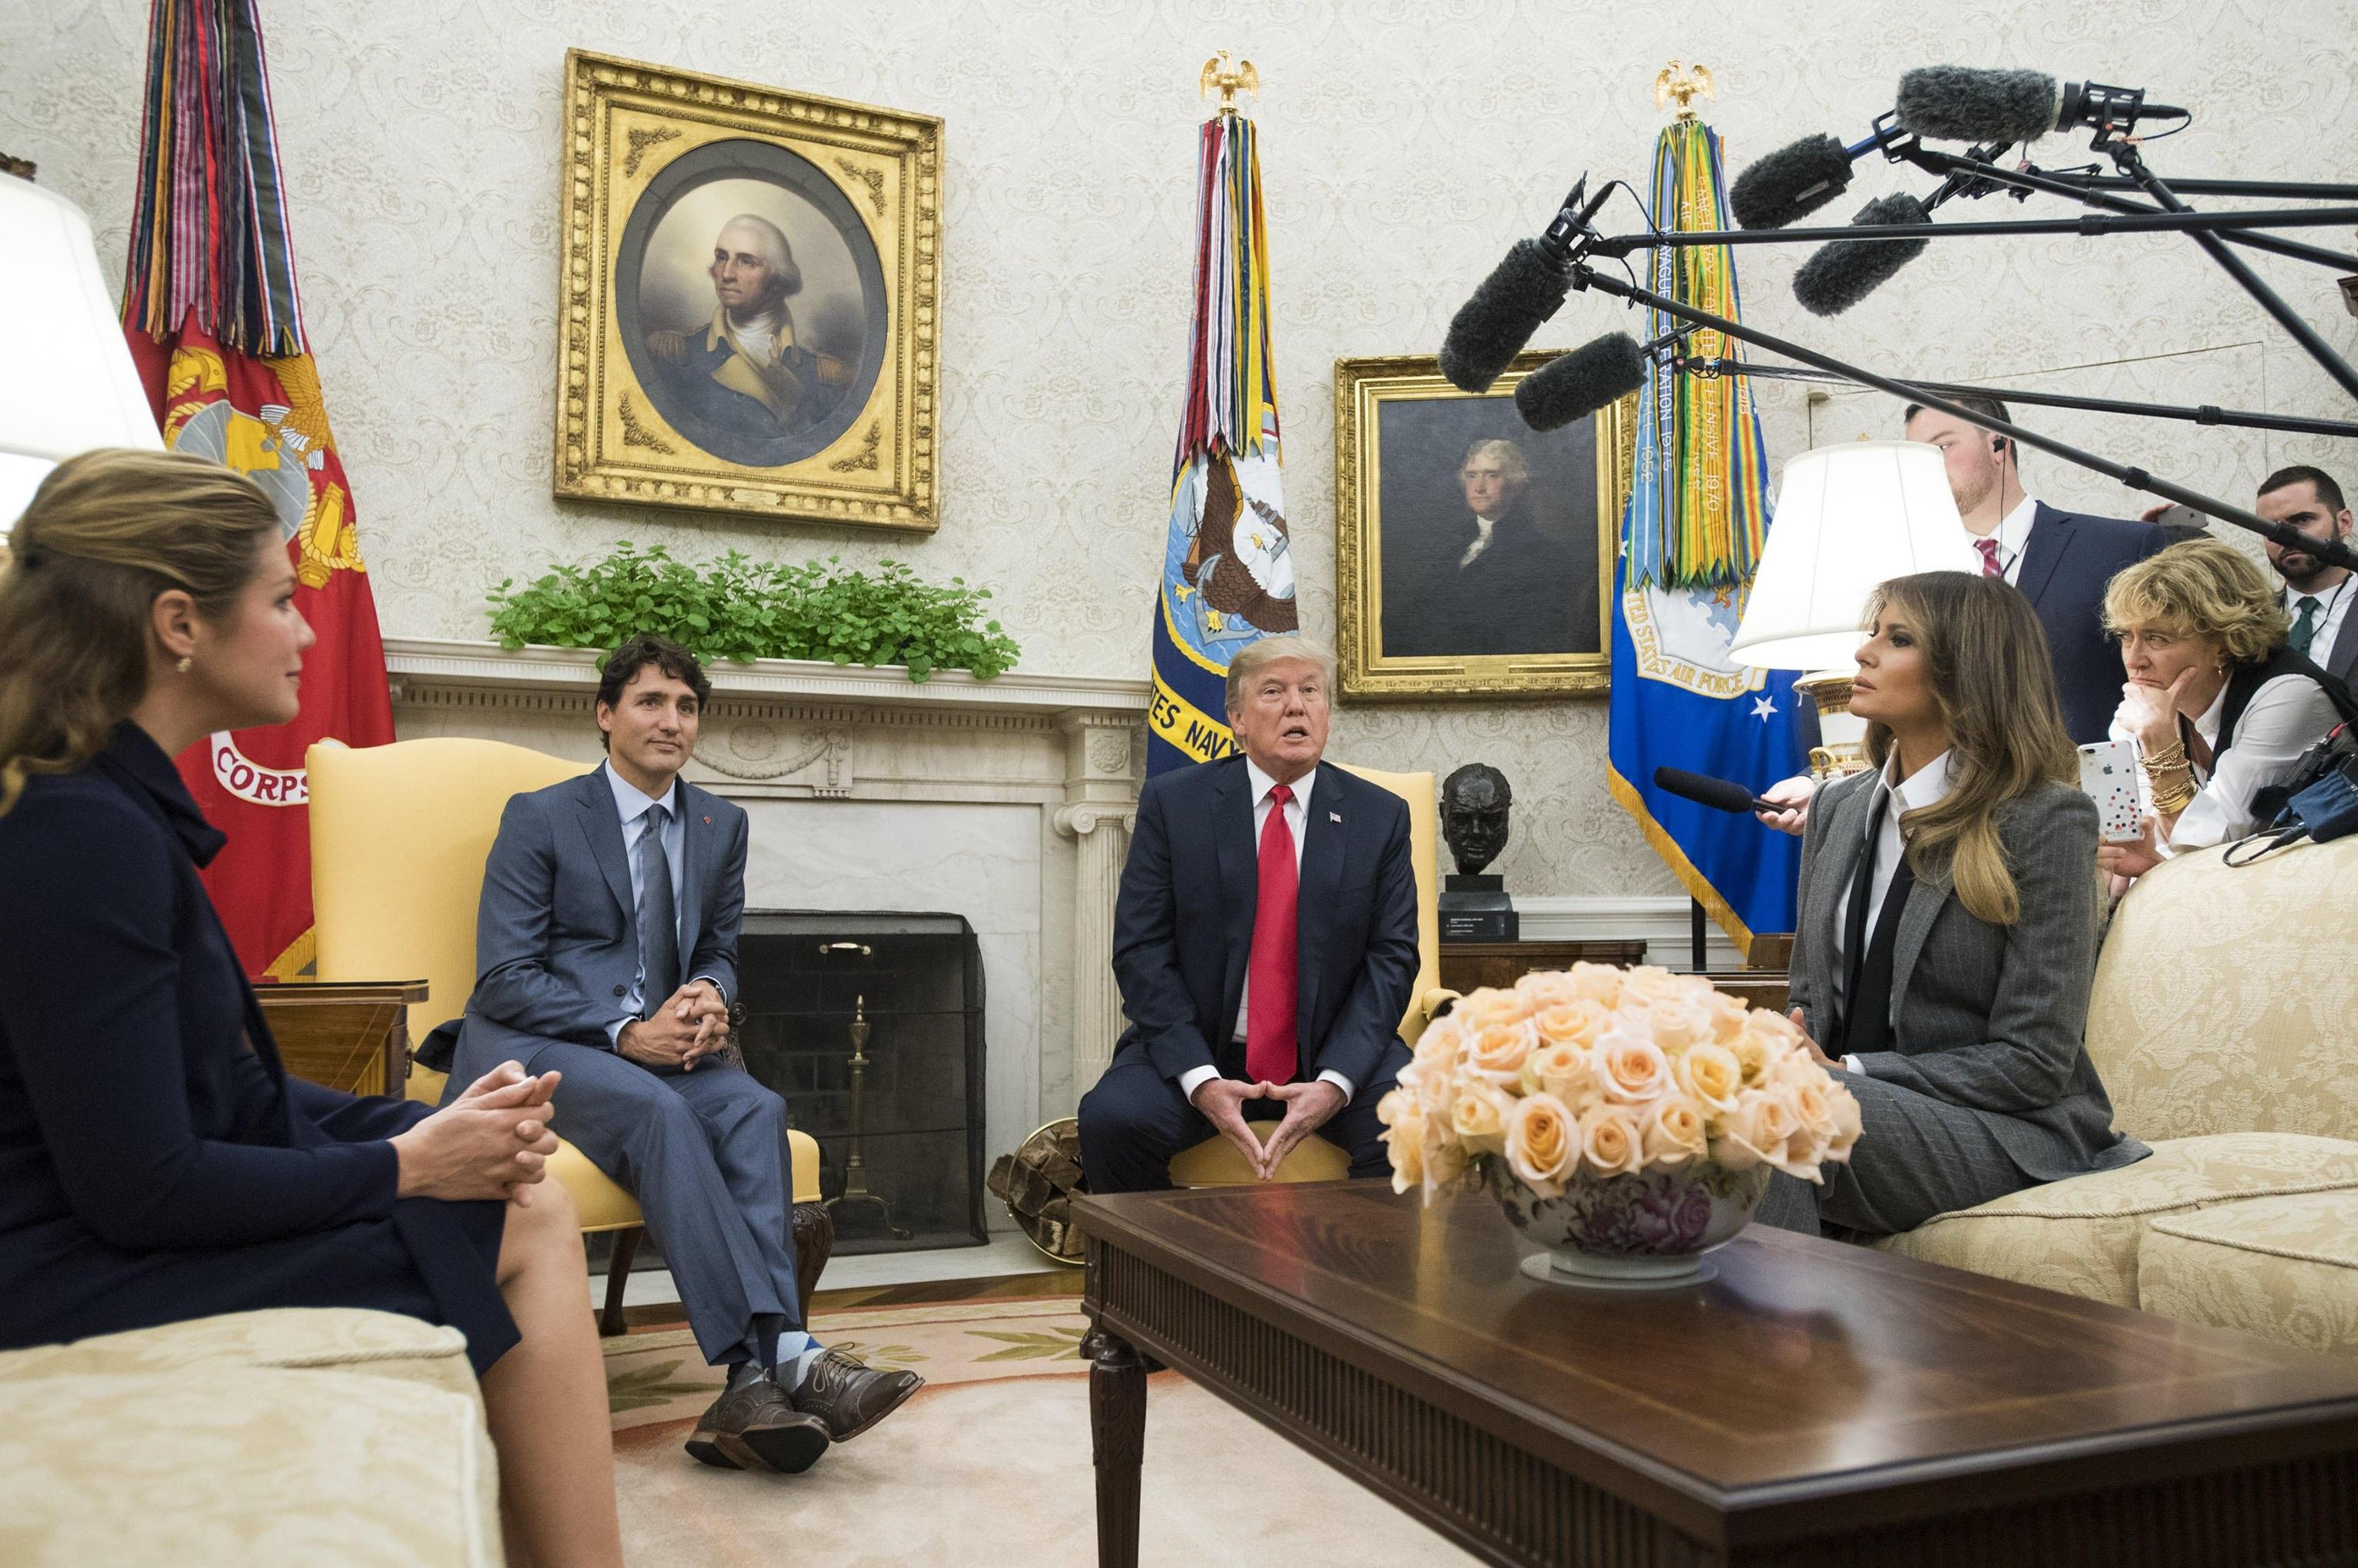 US President Donald J. Trump hosts Prime Minister of Canada Justin Trudeau